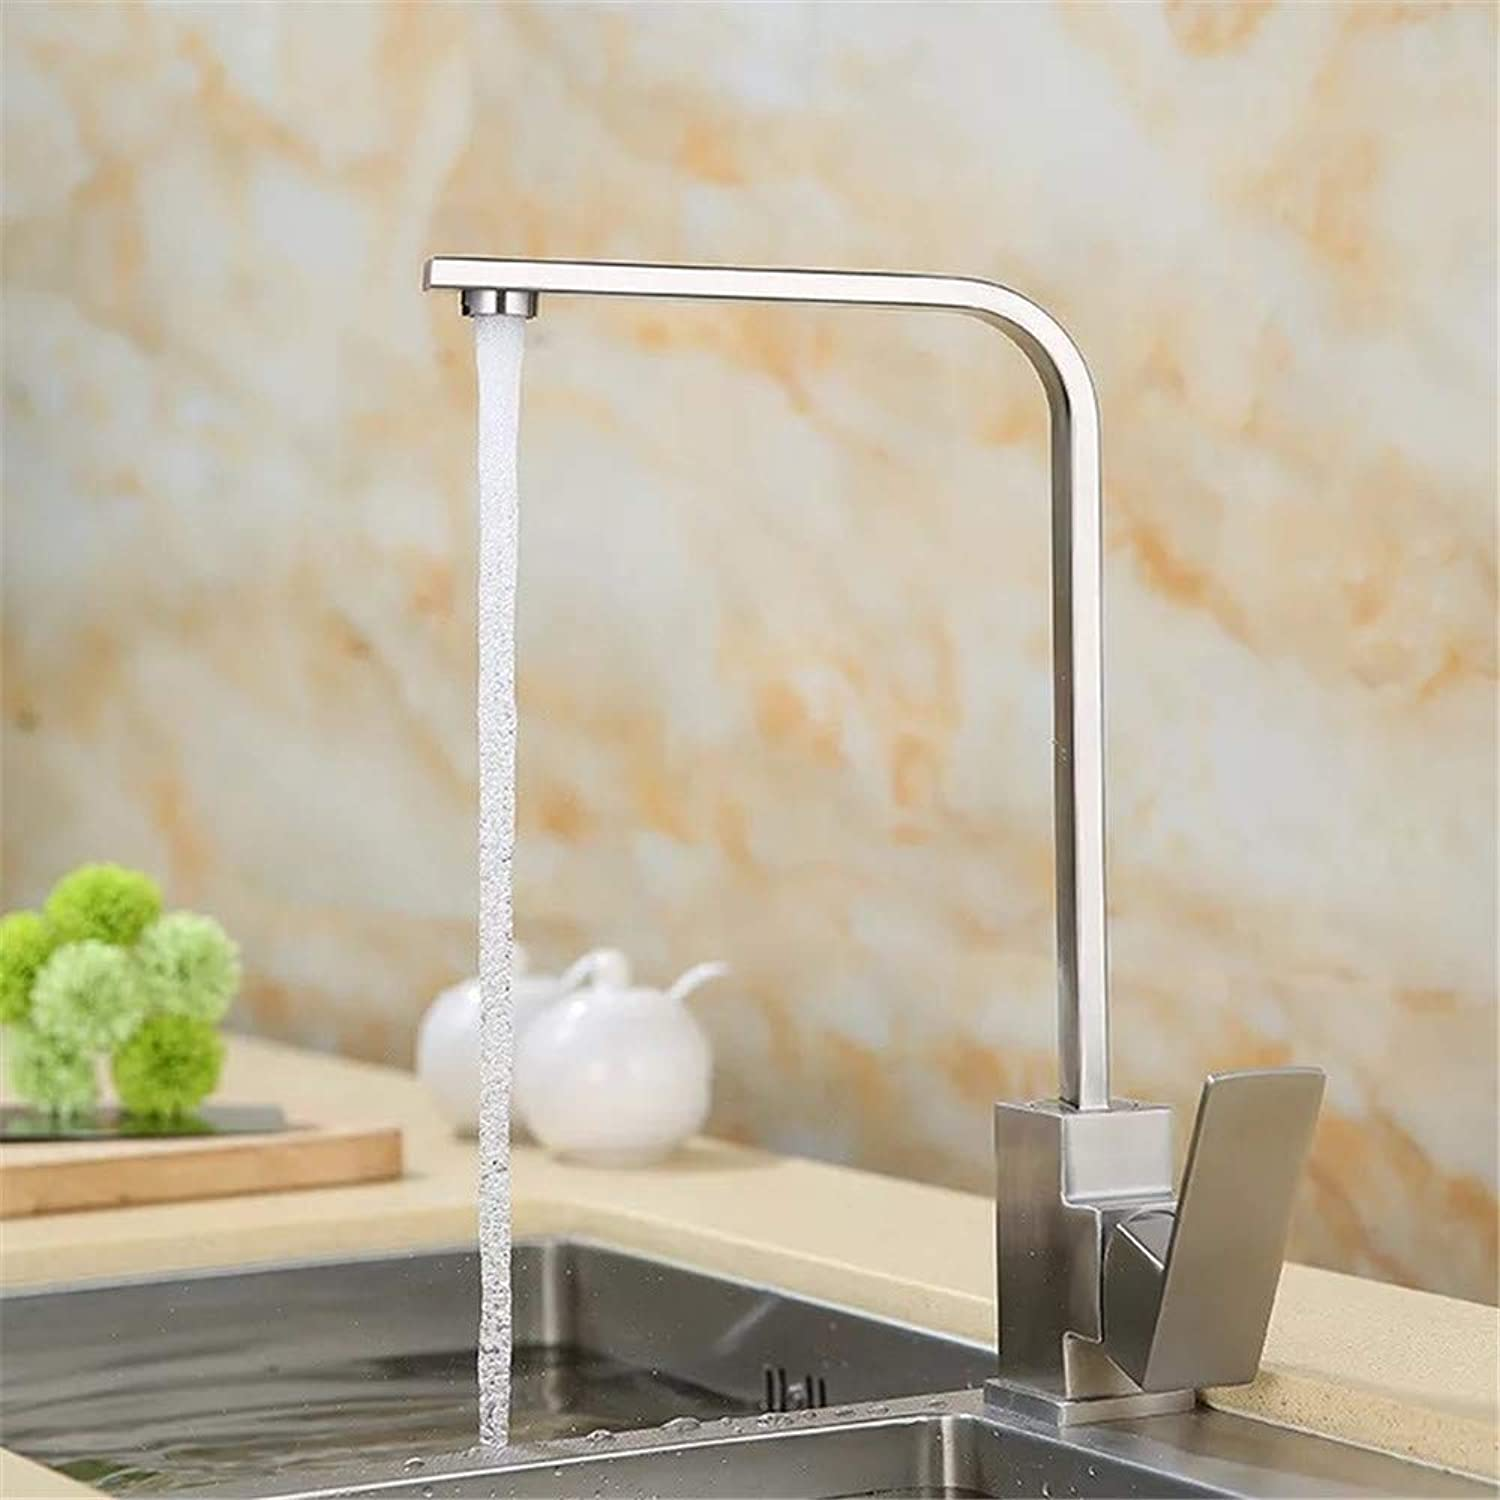 Oudan Lead Flat Tube redating Tank 304 Stainless Steel Cold Kitchen Sink Faucet Seven Characters Flat Tube is redated Vegetables Basin Mixer (color   -, Size   -)